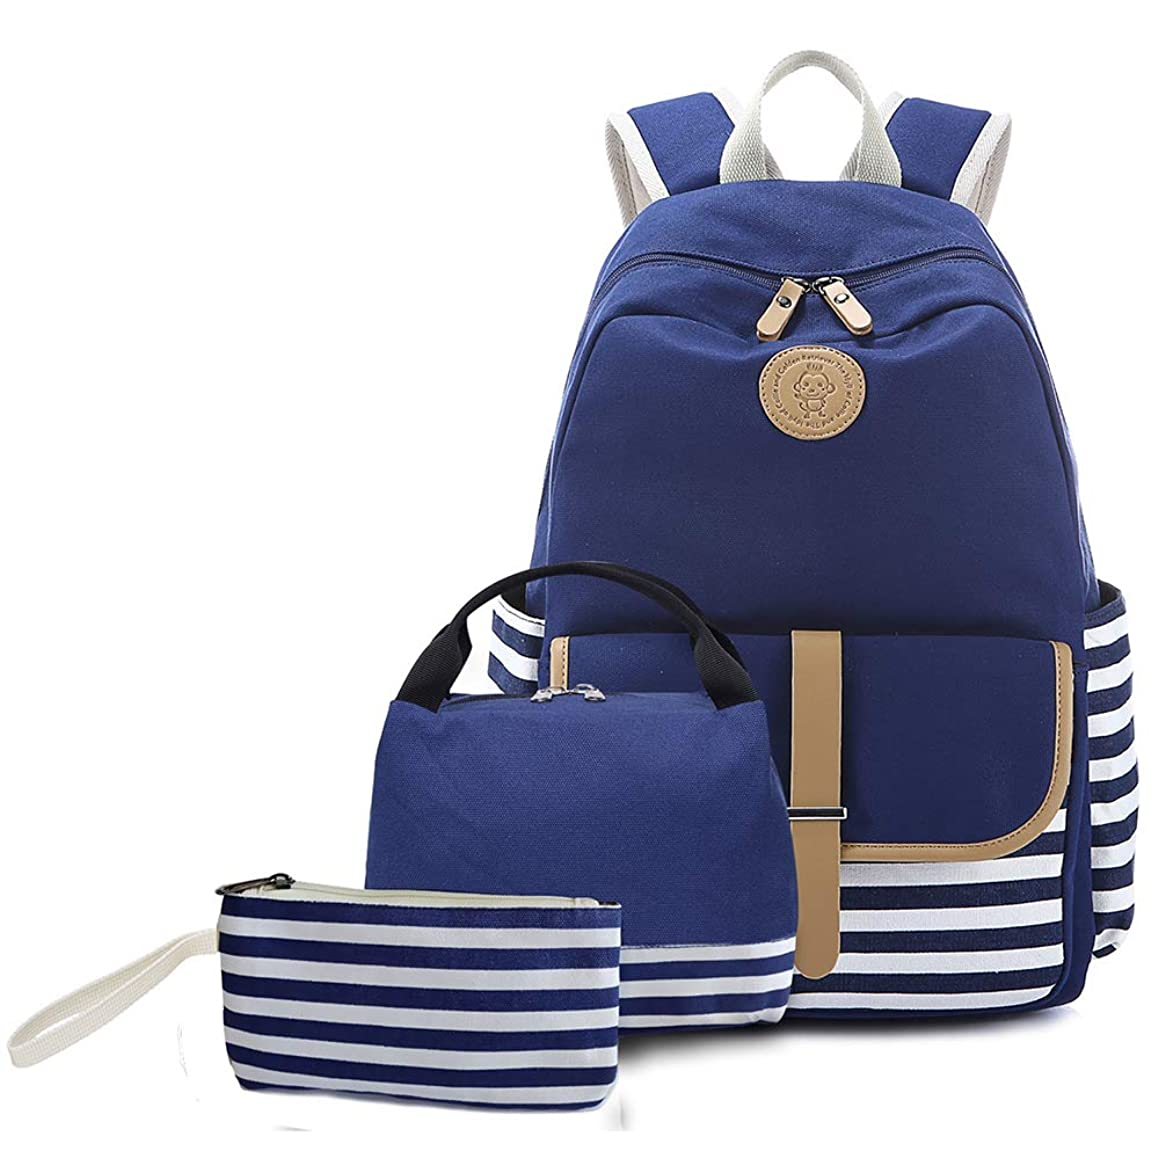 School Backpack for Teen Girls, Createy School Backpack Canvas College Bag Student Bookbag Laptop Backpack Casual Travel Daypack Rucksack with Lunch Bag and Pencil Case